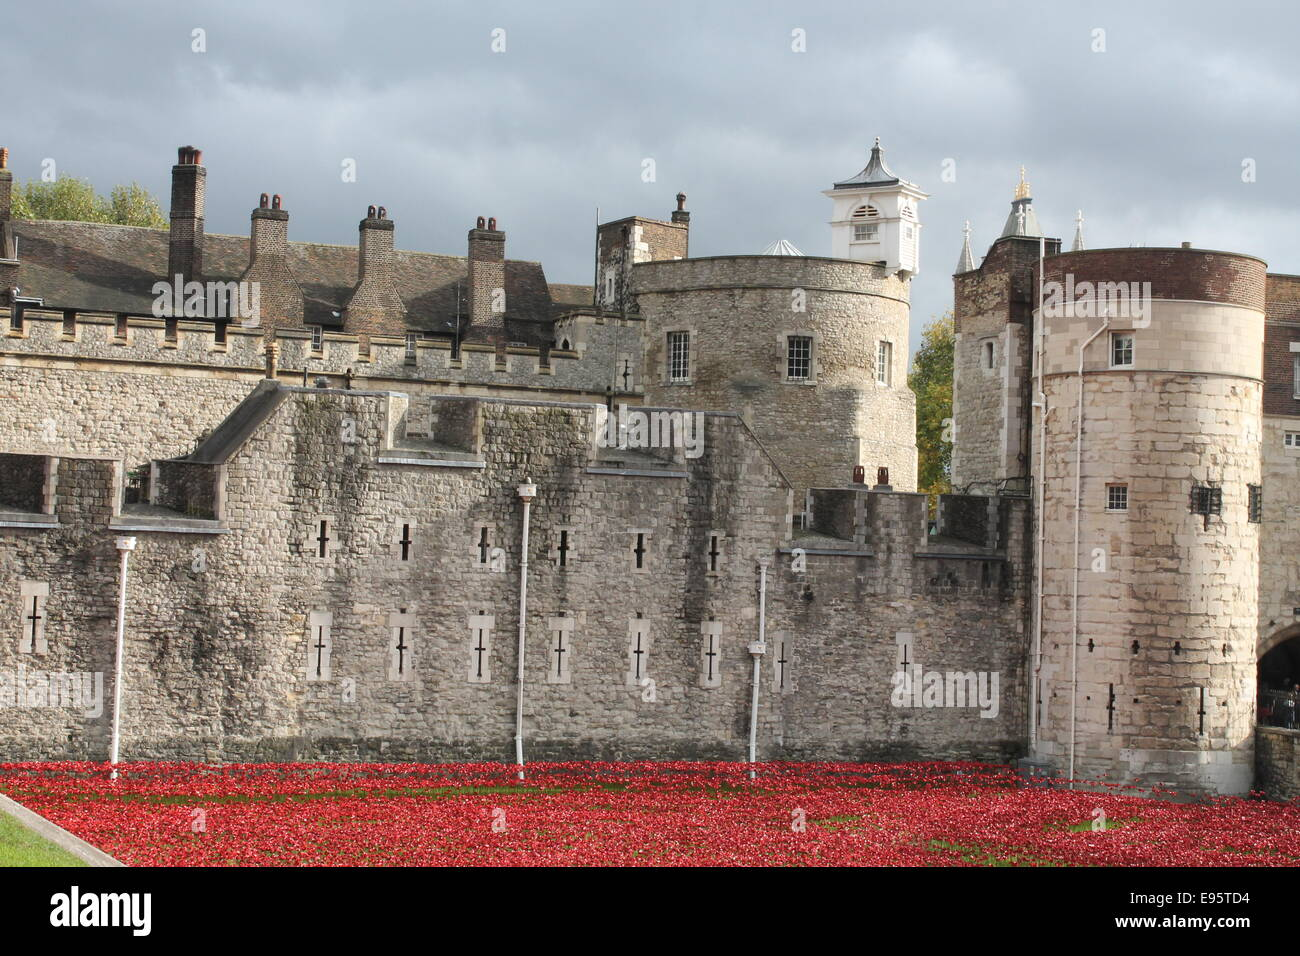 Blood Swept Lands and Seas of Red - Paul Cummins  Poppies at the Tower of London - Stock Image